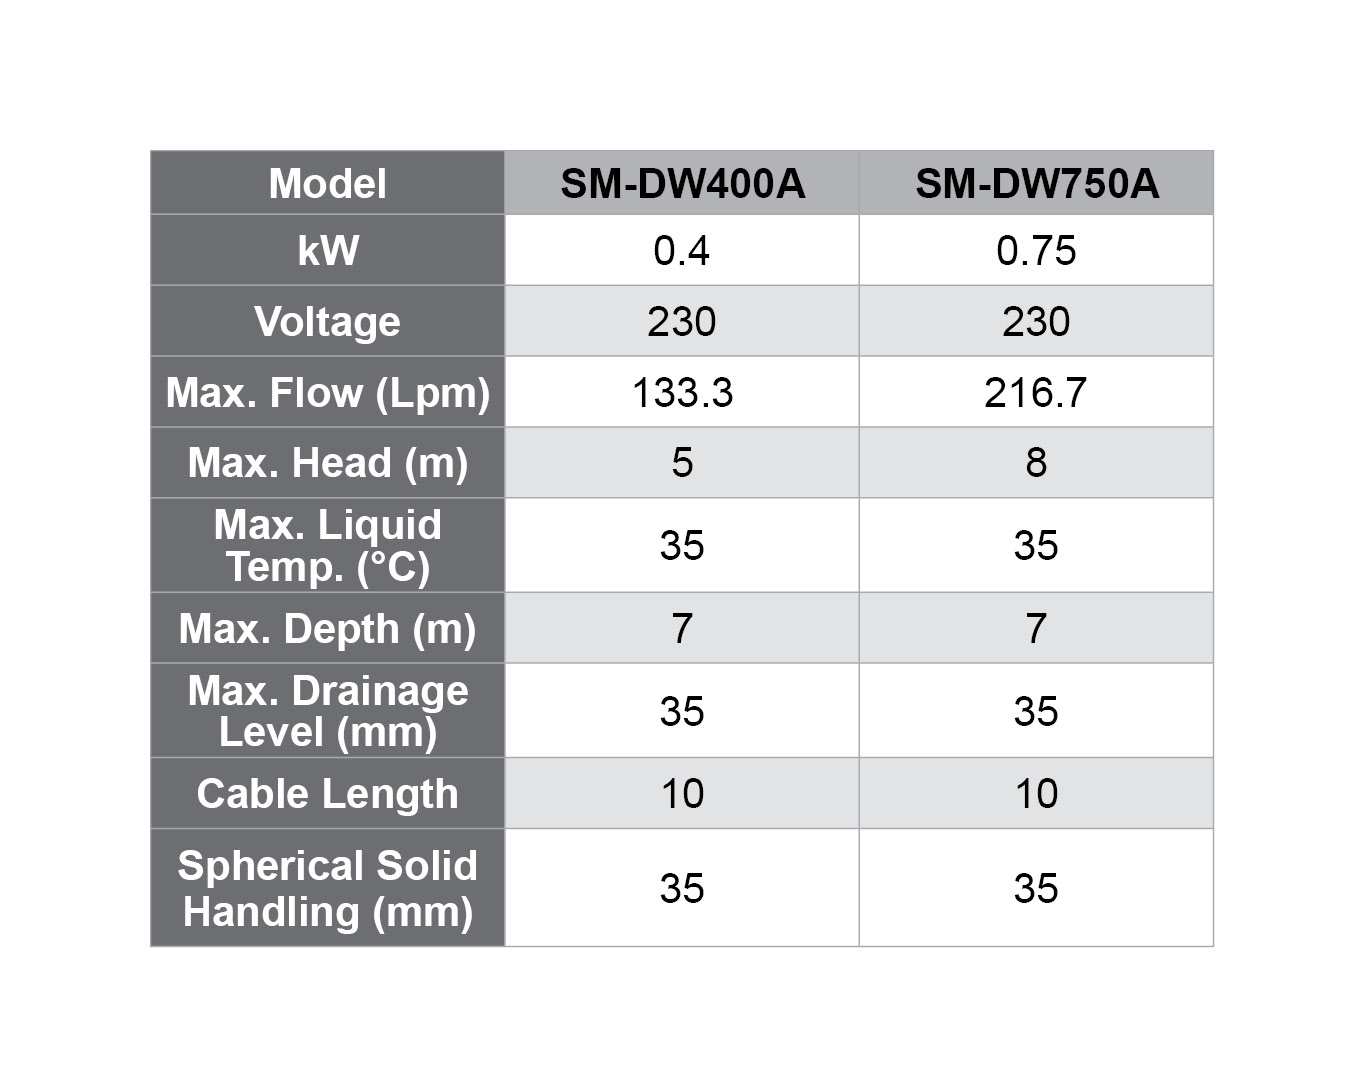 SM DW specifications